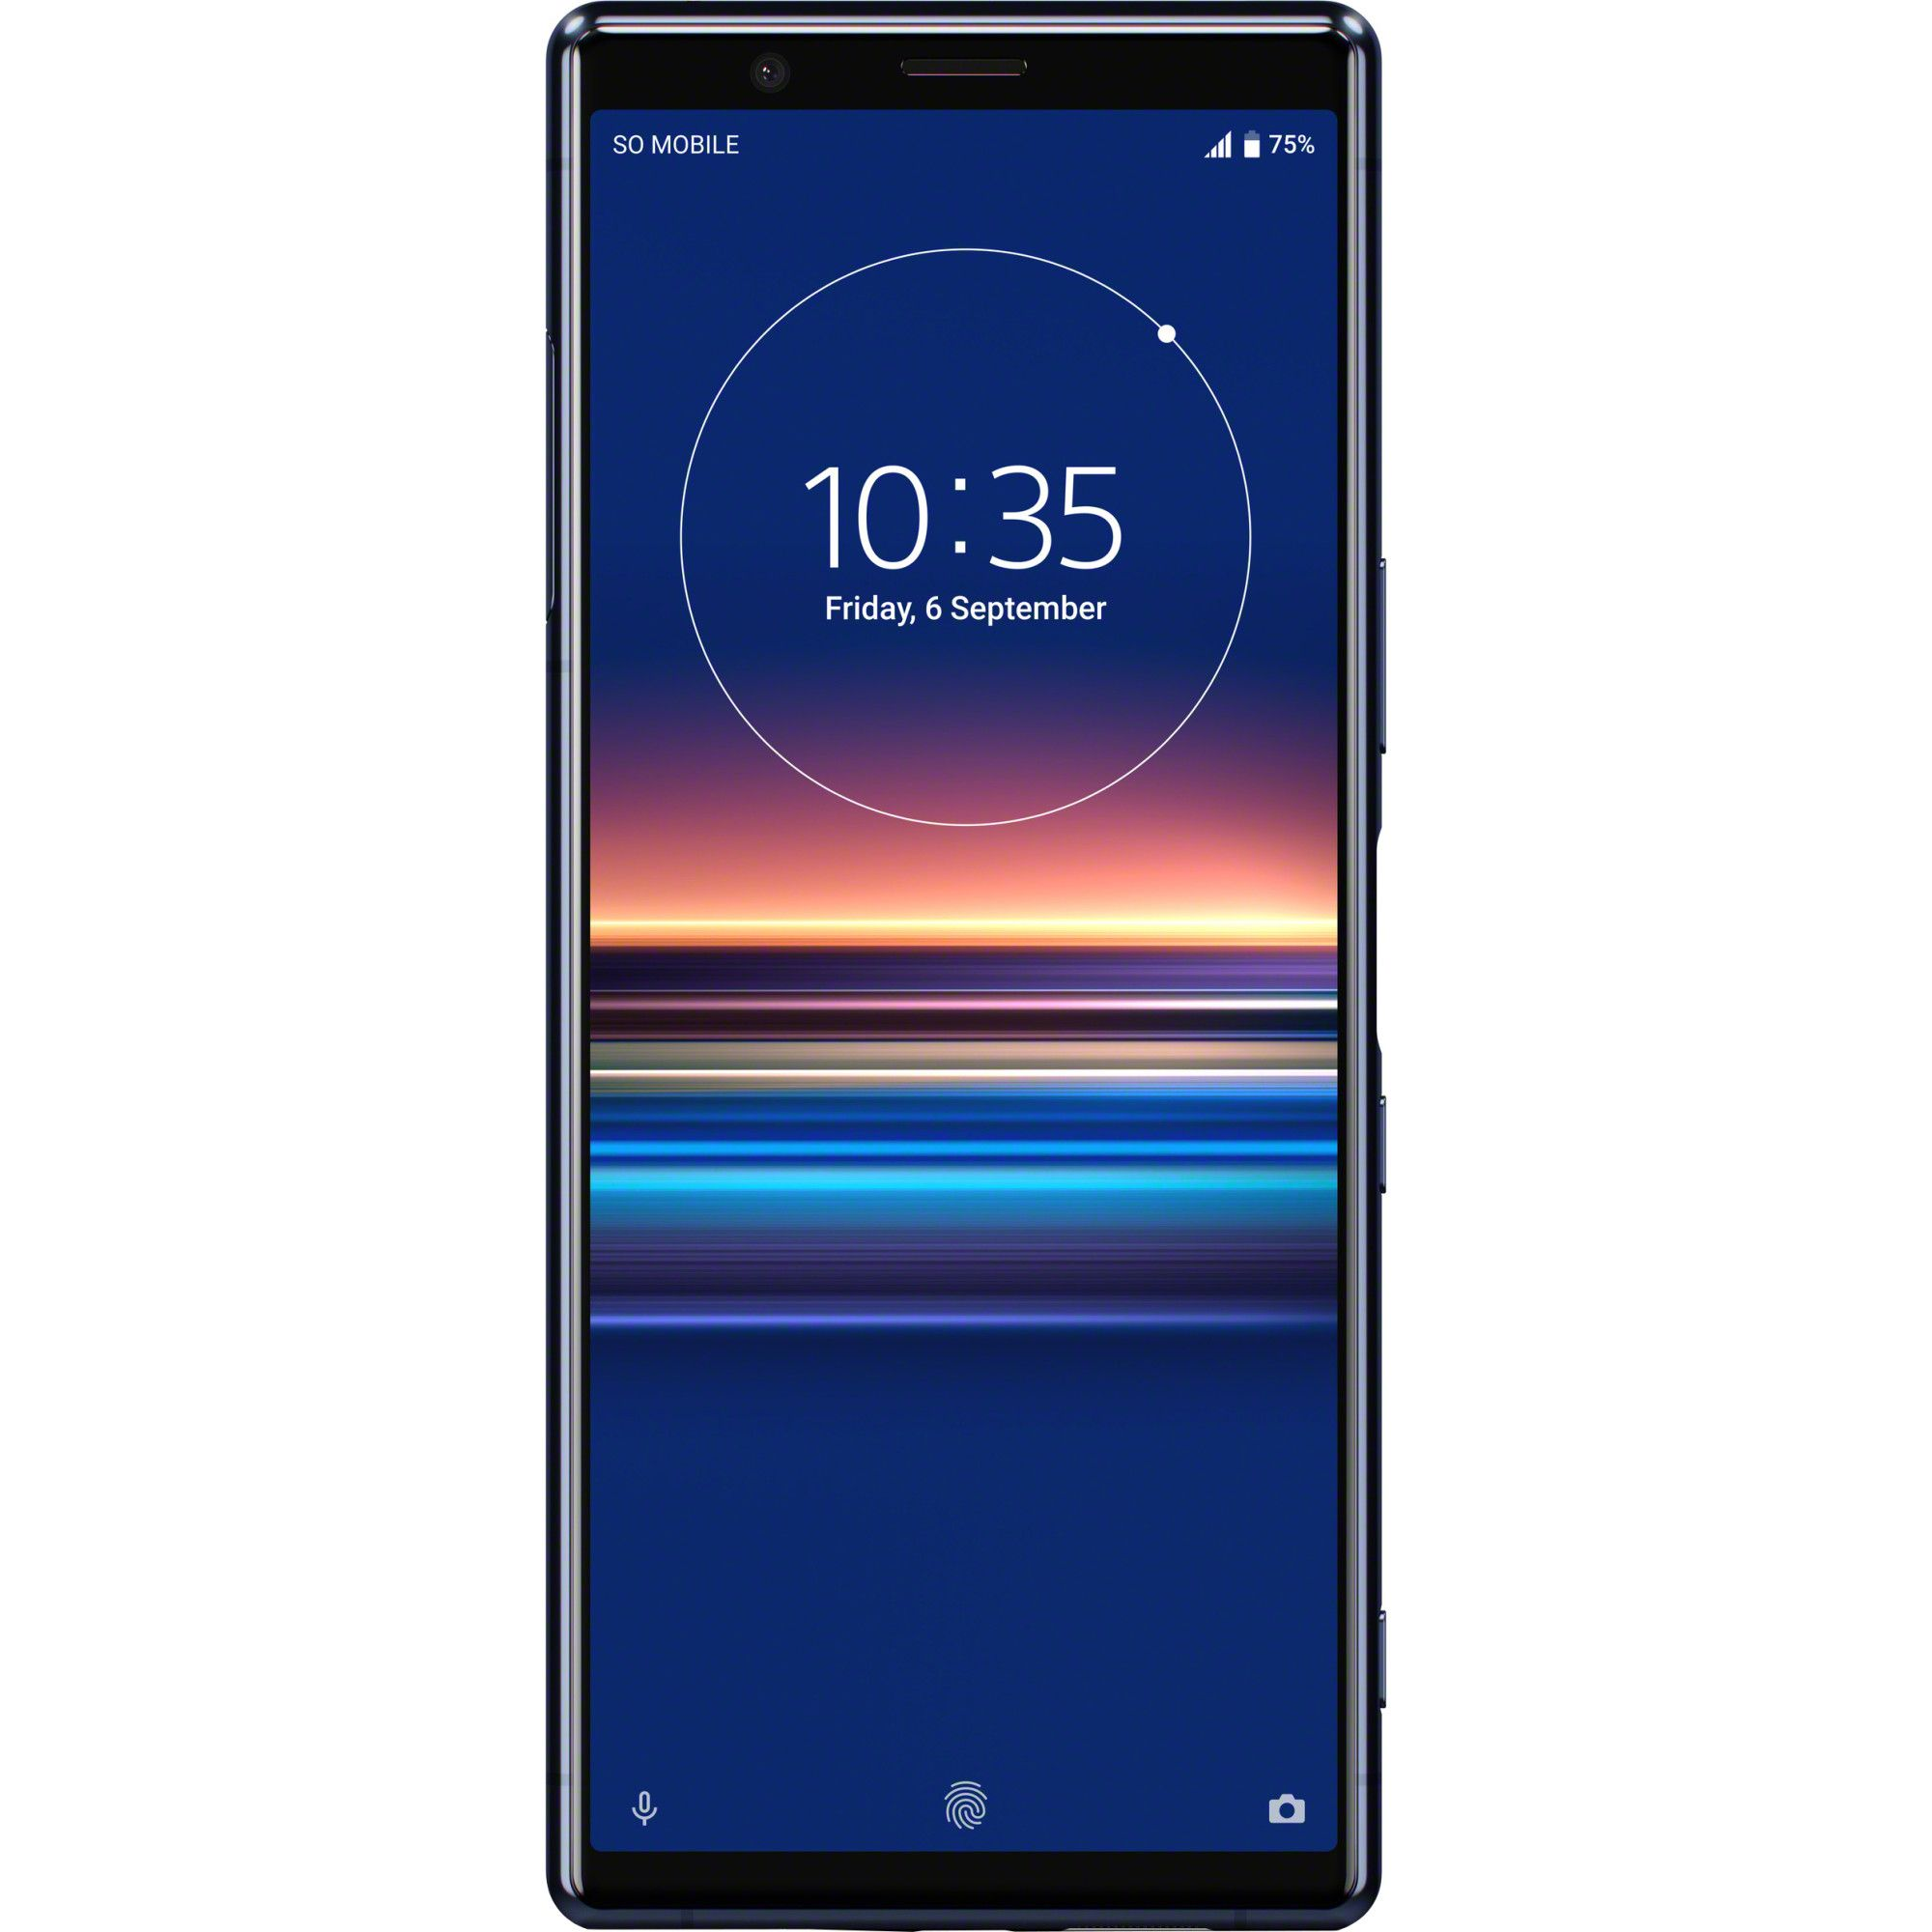 Telefon mobil Sony Xperia 5, Single SIM, 128GB, 6GB RAM, 4G, Blue